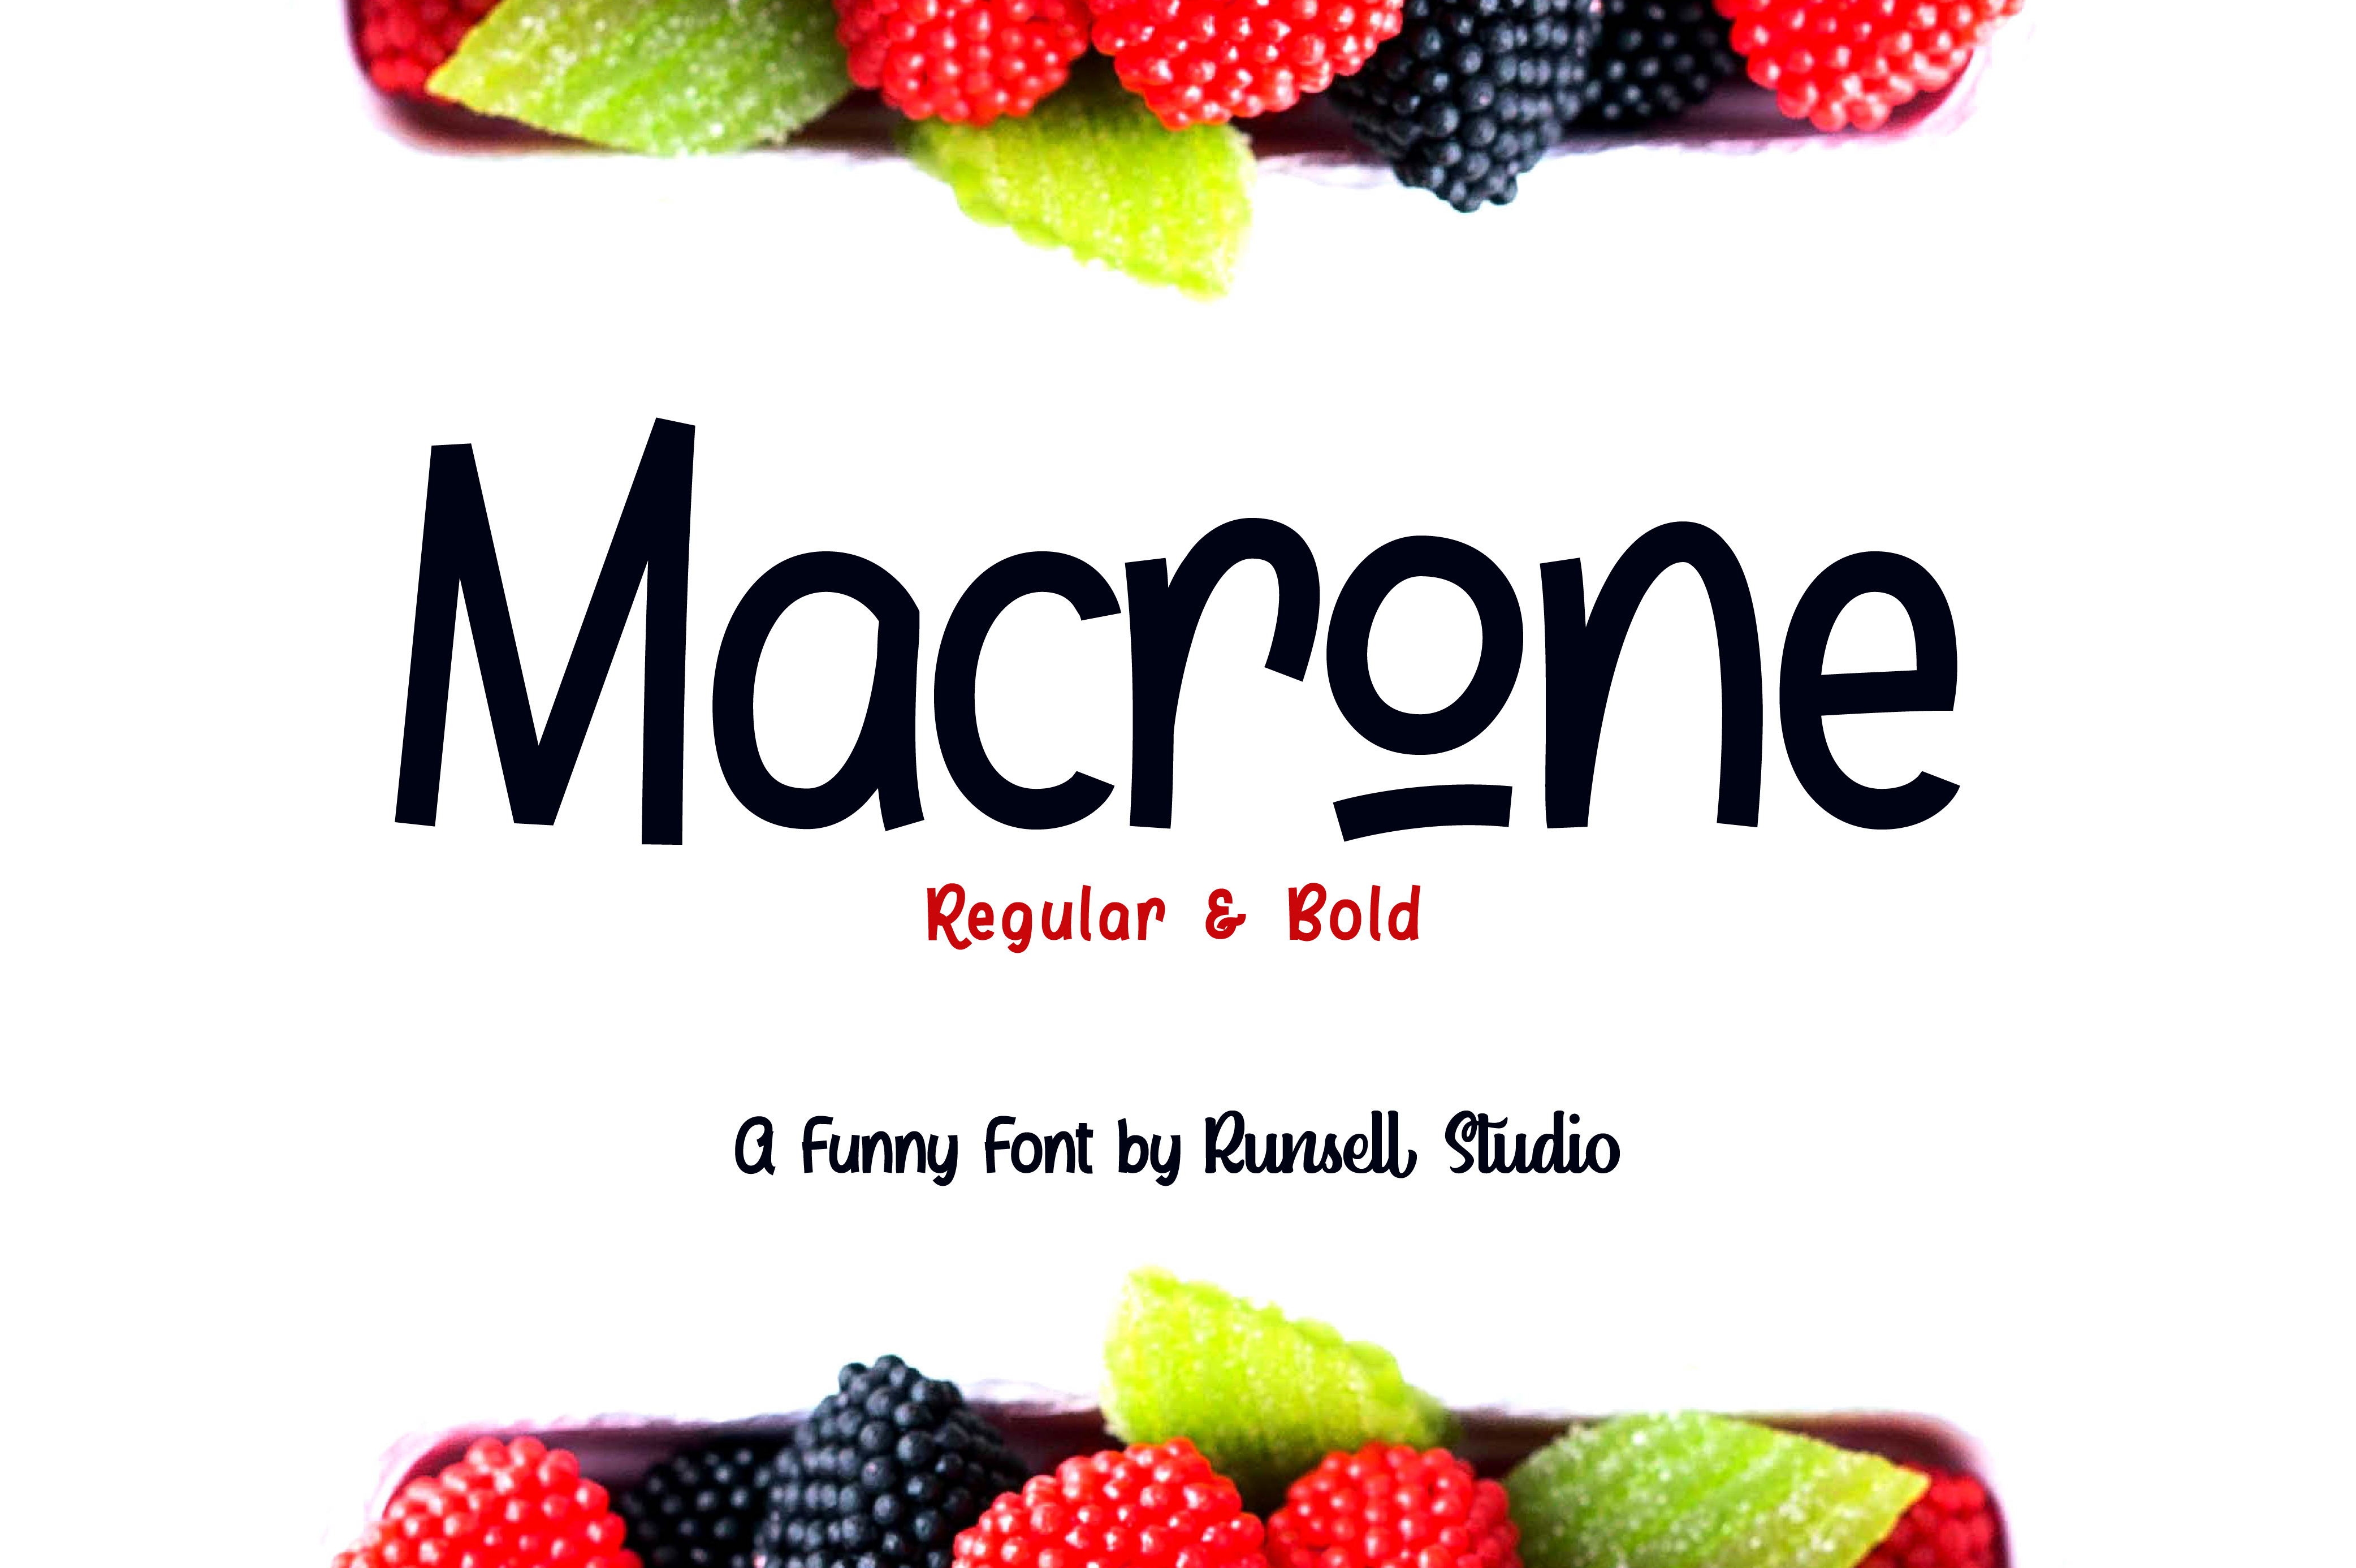 Macrone Display Font By Runsell Graphic